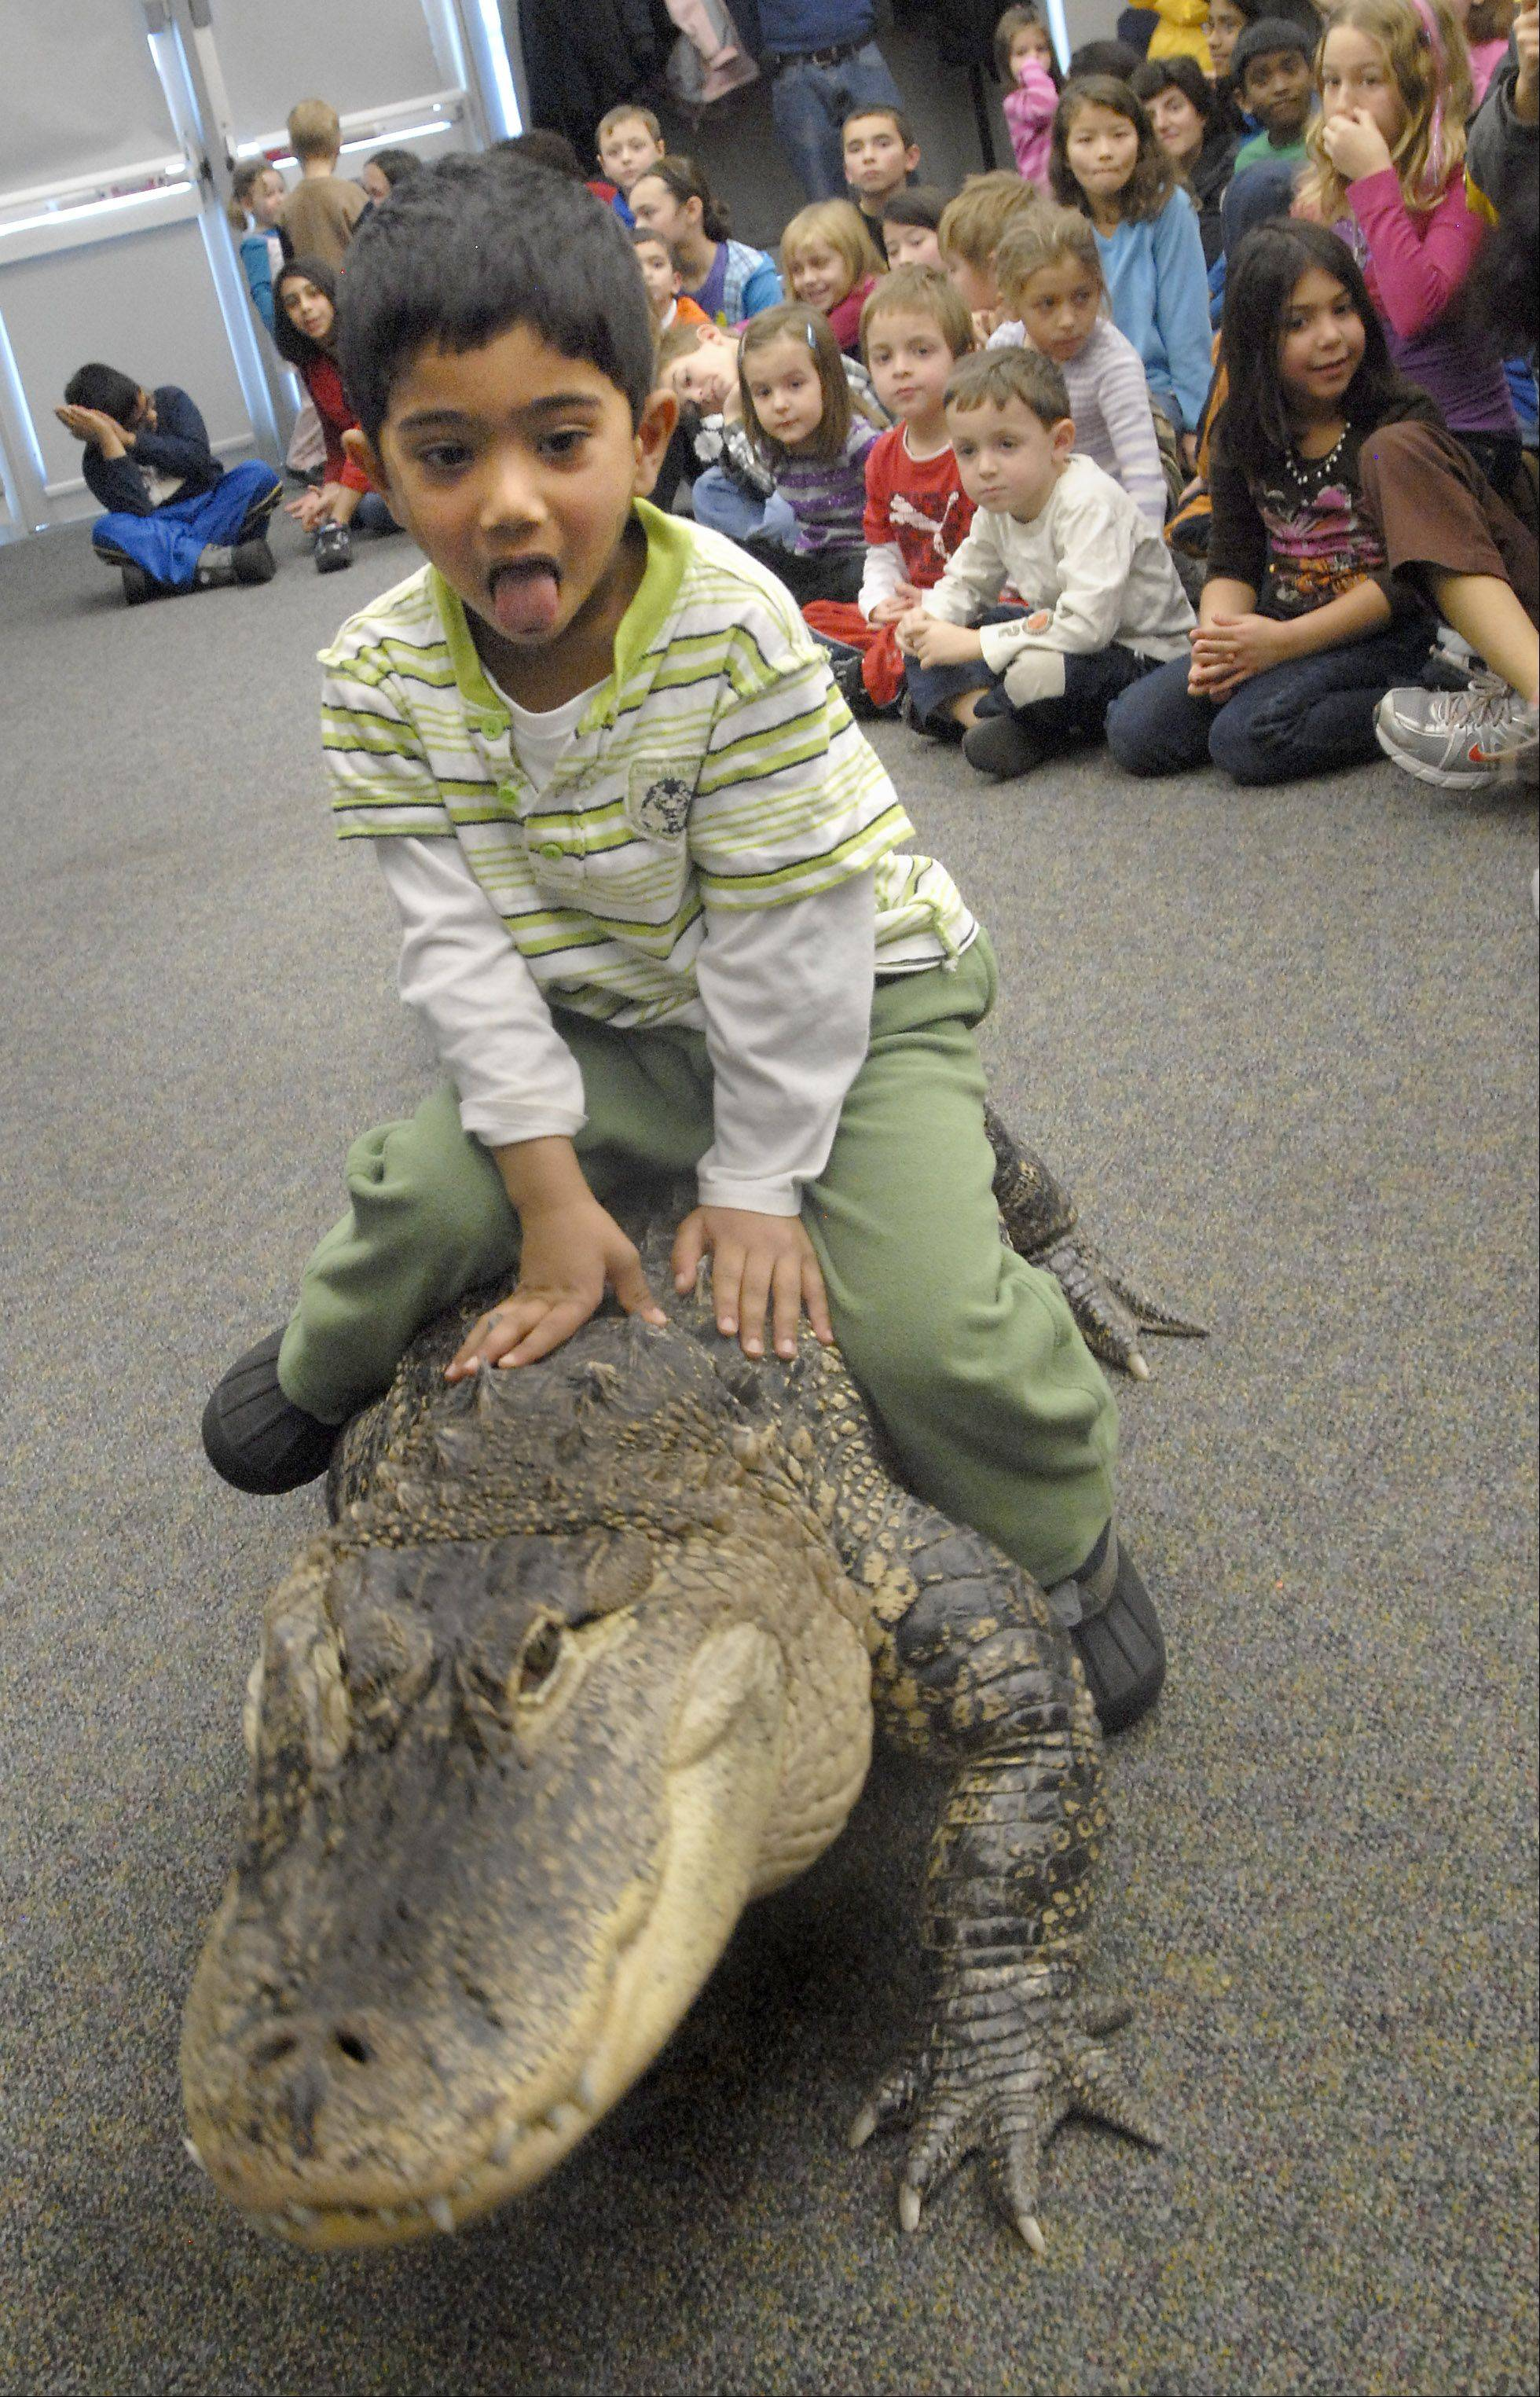 Kids can meet an 8-foot long, 200-pound American Alligator named Bubba during the Cold Blooded Creatures show at Last Fling in Naperville.